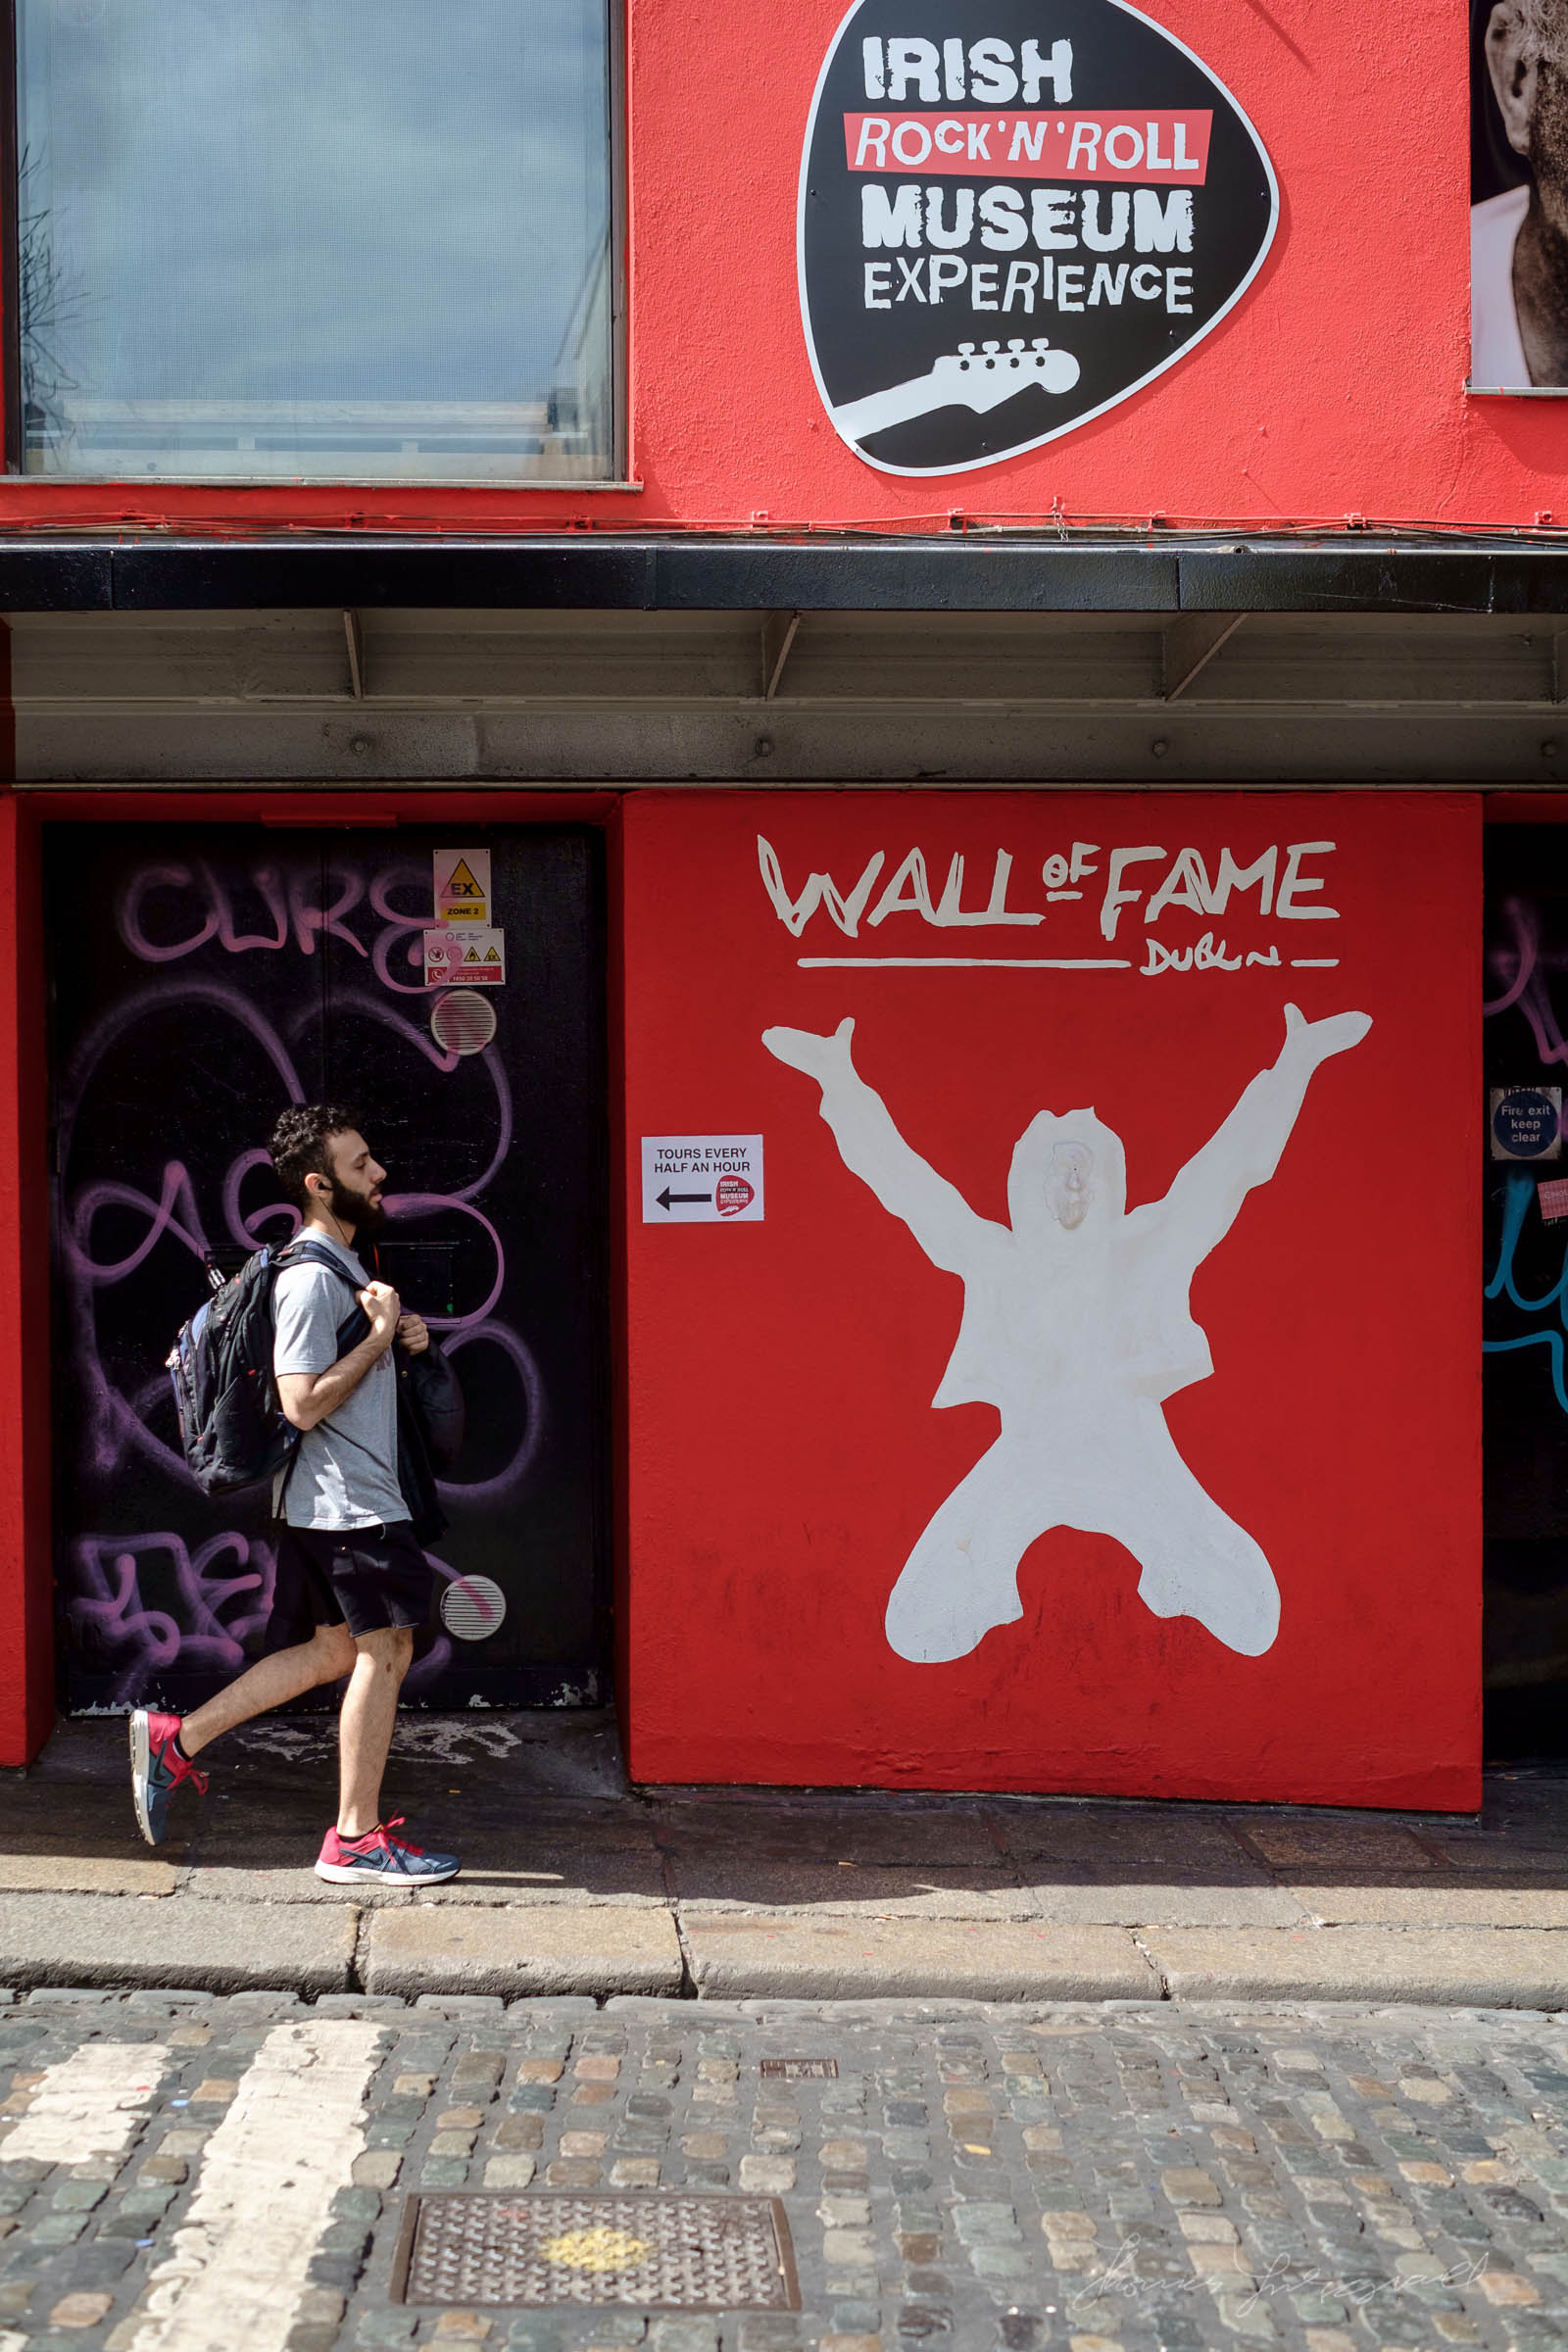 Walking by the Wall of Fame in Dublin's Temple Bar